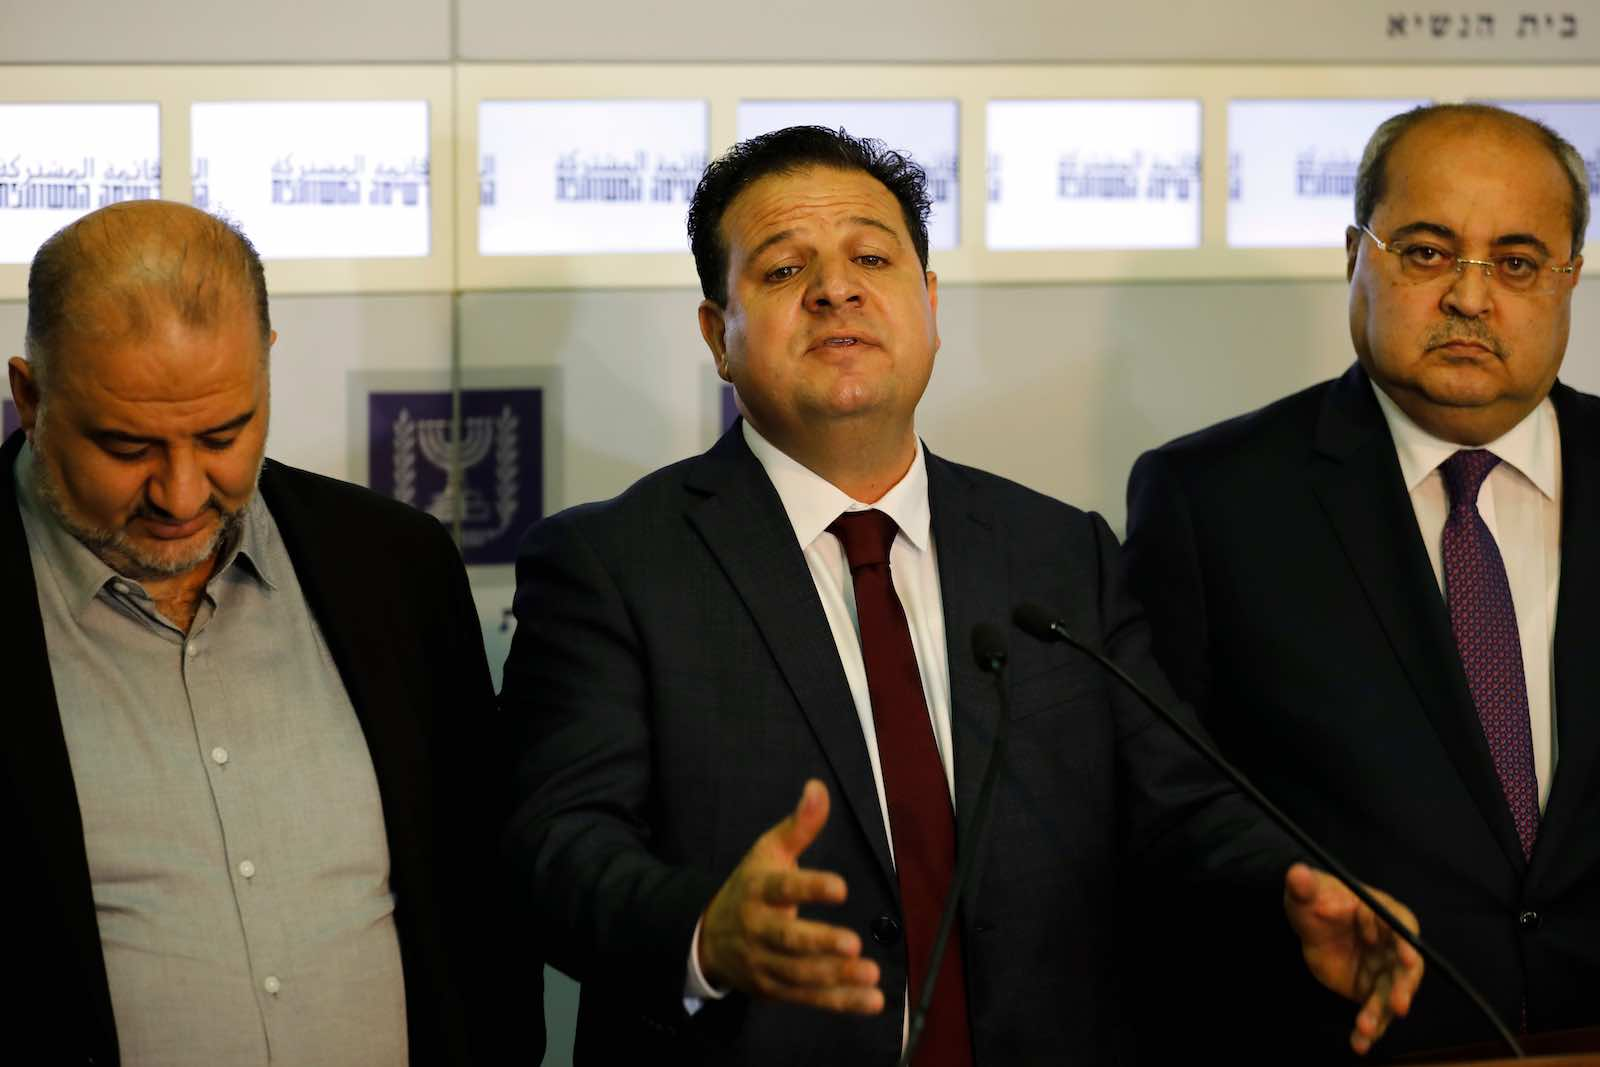 Ayman Odeh (centre) with members of the Joint Arab List (Photo: Menahem Kahana/AFP/Getty Images)